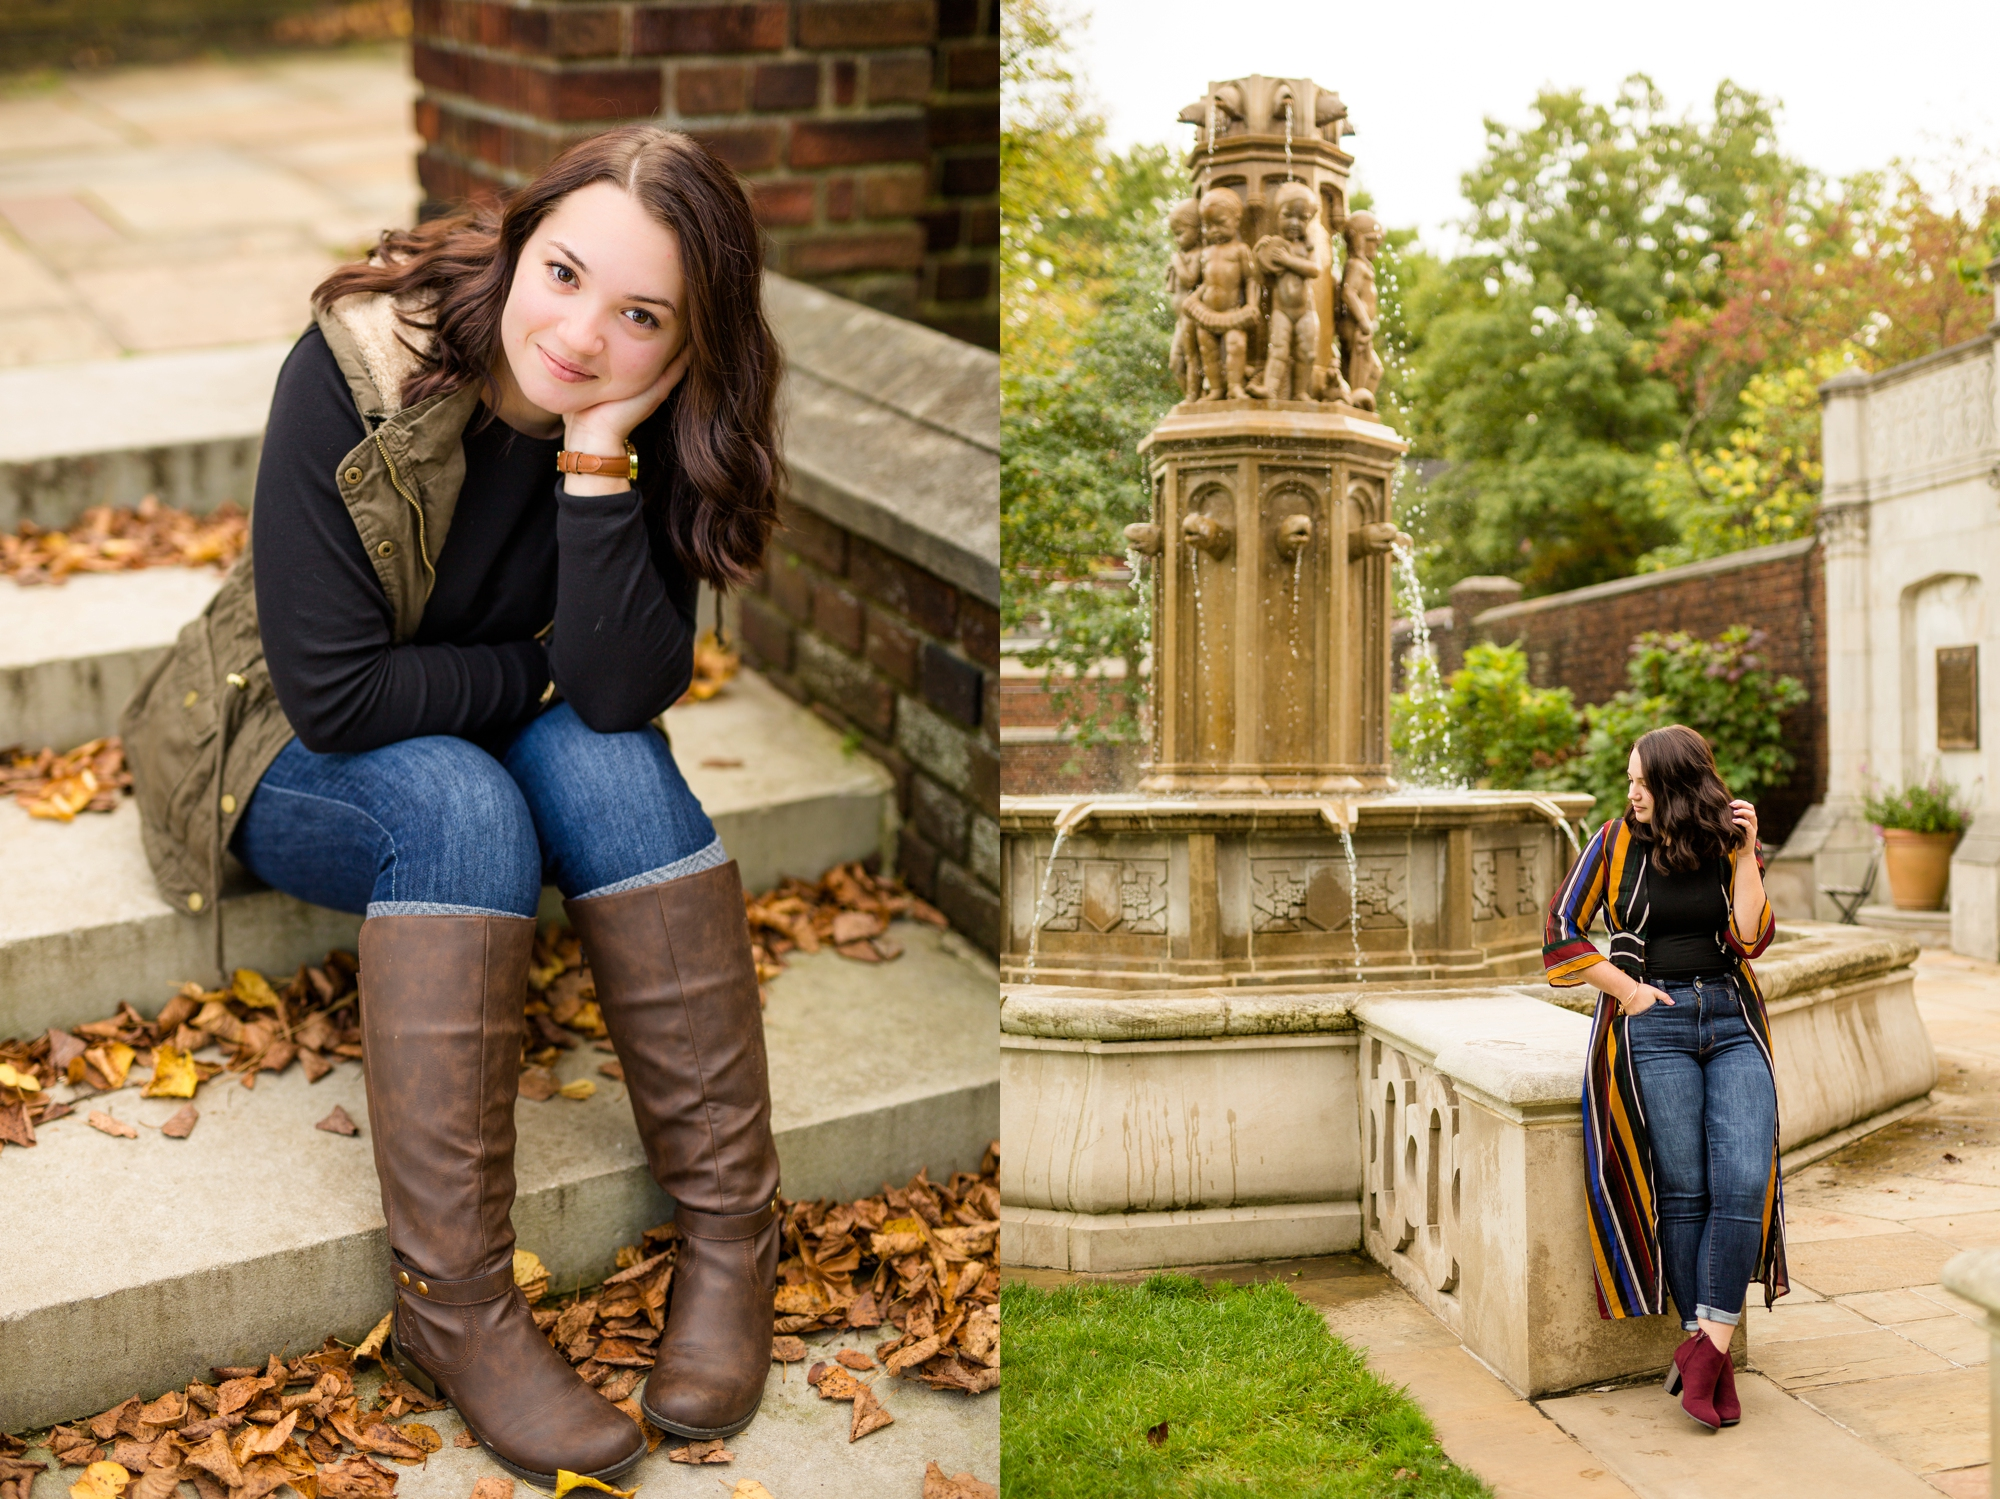 senior pictures pittsburgh, places to take senior pictures in pittsburgh, best places to take senior pictures in pittsburgh, best location for photoshoot in pittsburgh, mellon park senior pictures